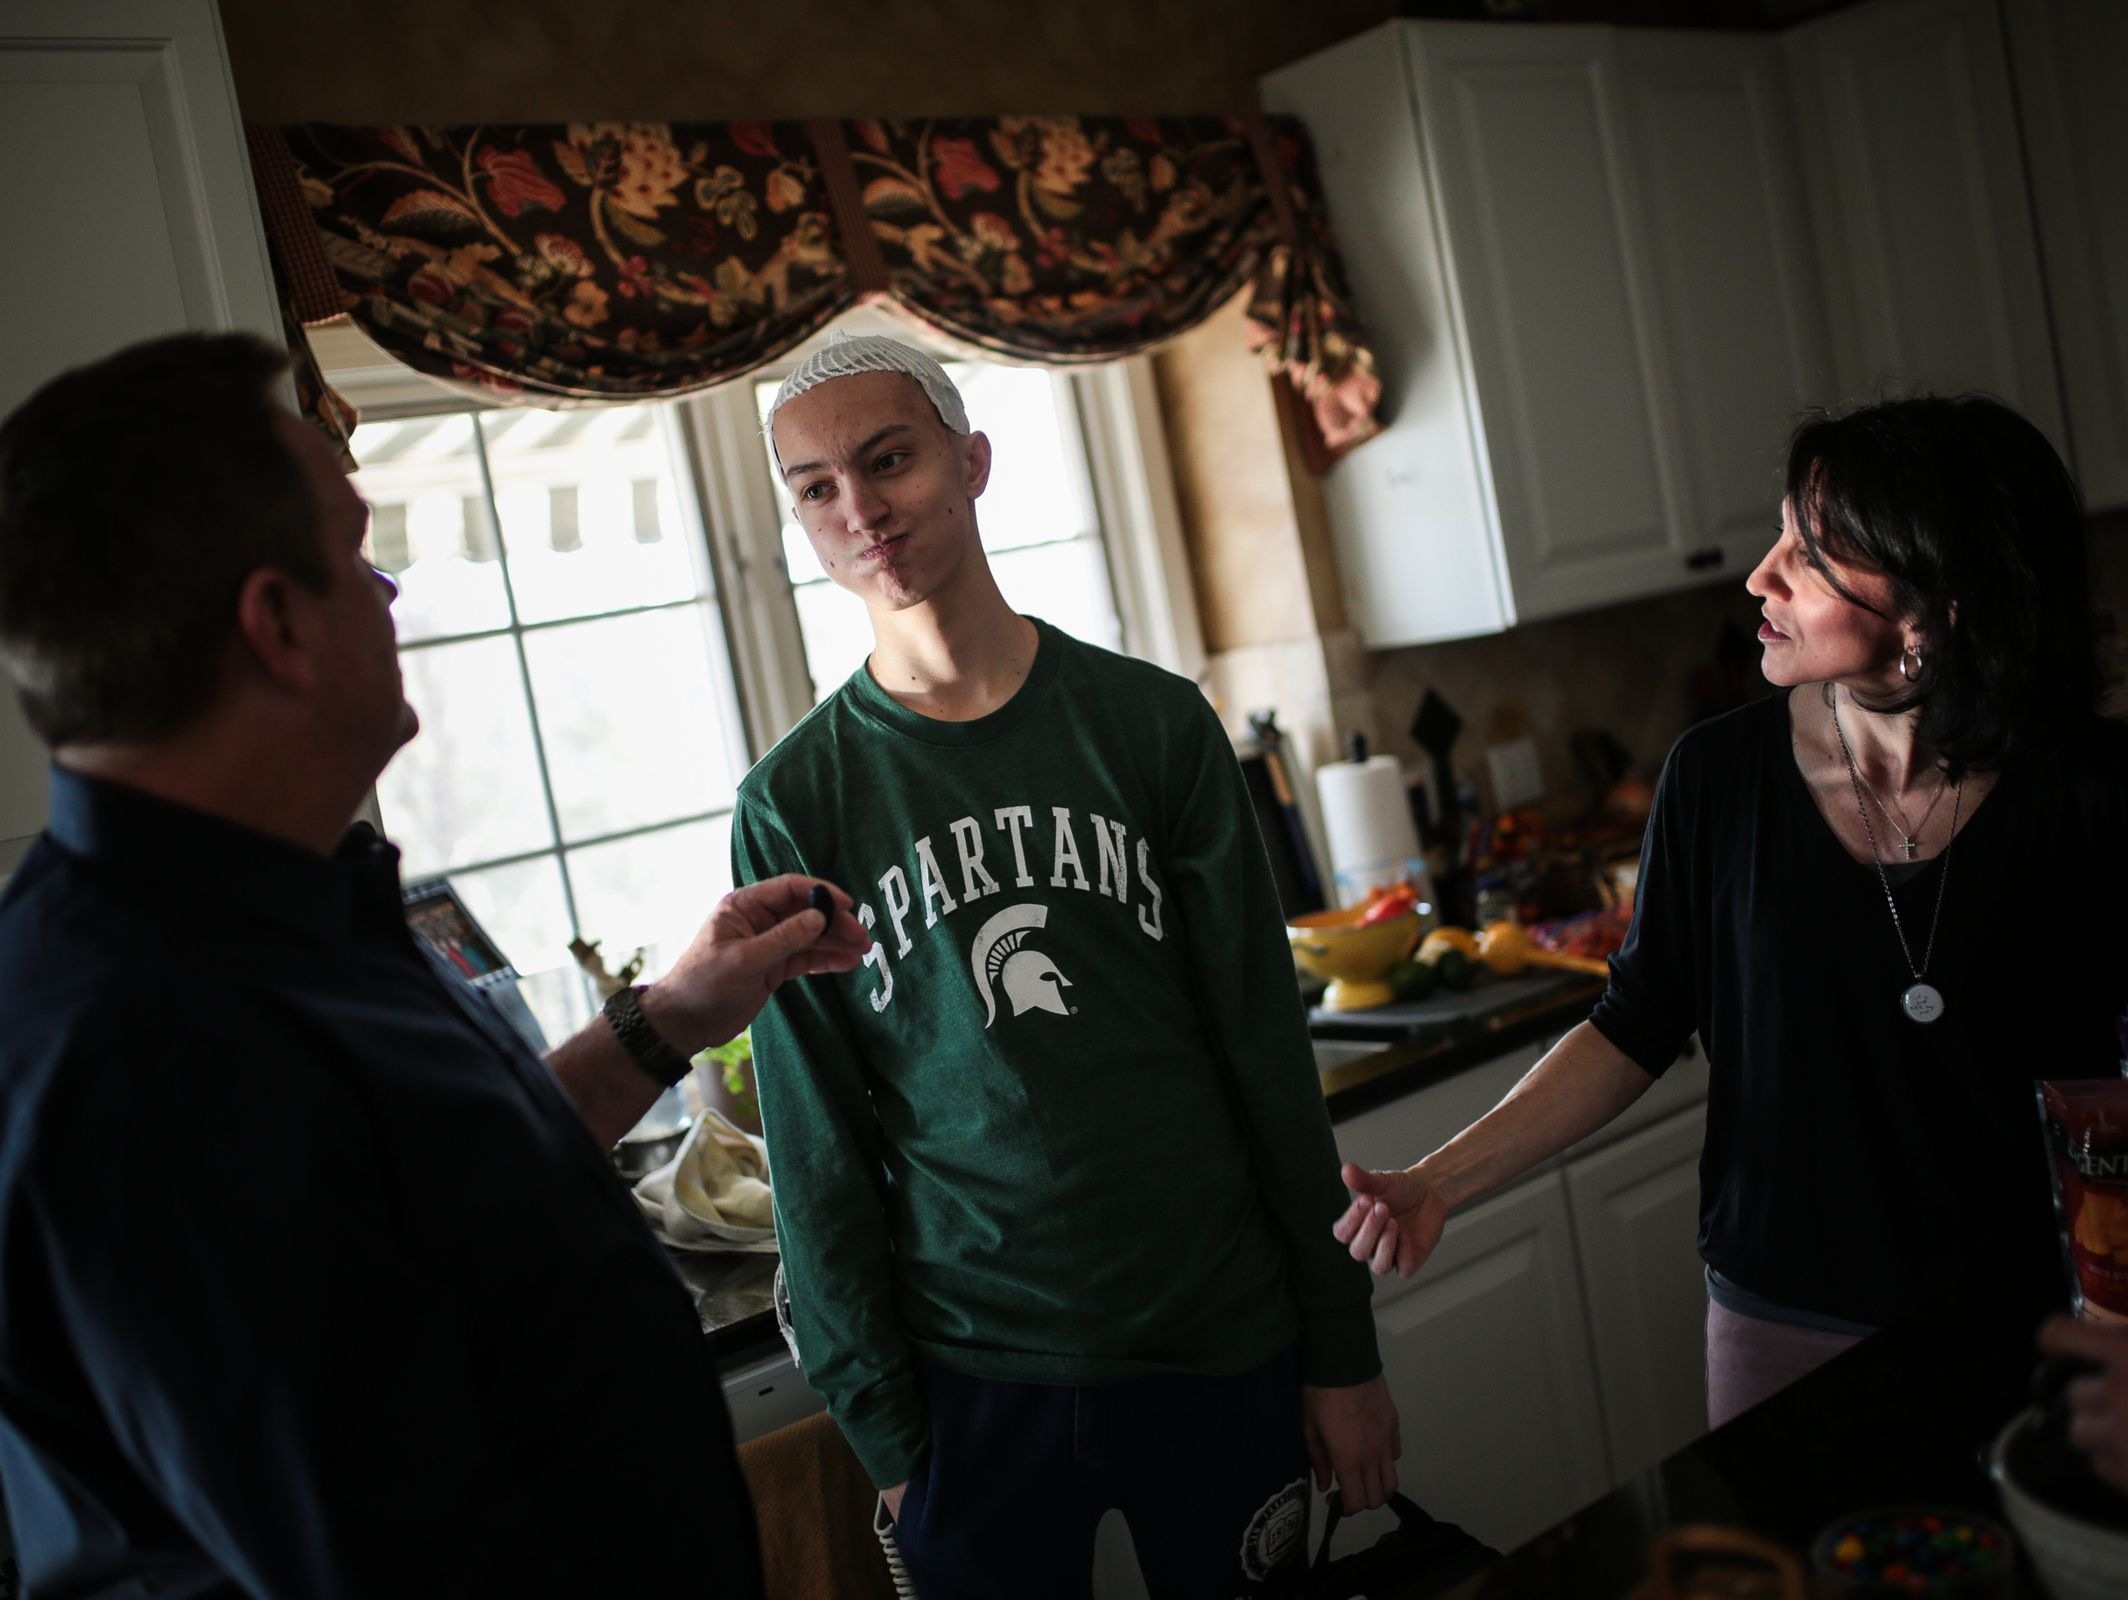 Sam Kell, 16, of Rochester, center, listens to his stepdad Michael Spehn, 53, of Rochester, and his mother Gina Kell Spehn, 47, of Rochester, at their home on Saturday, March 11, 2017.